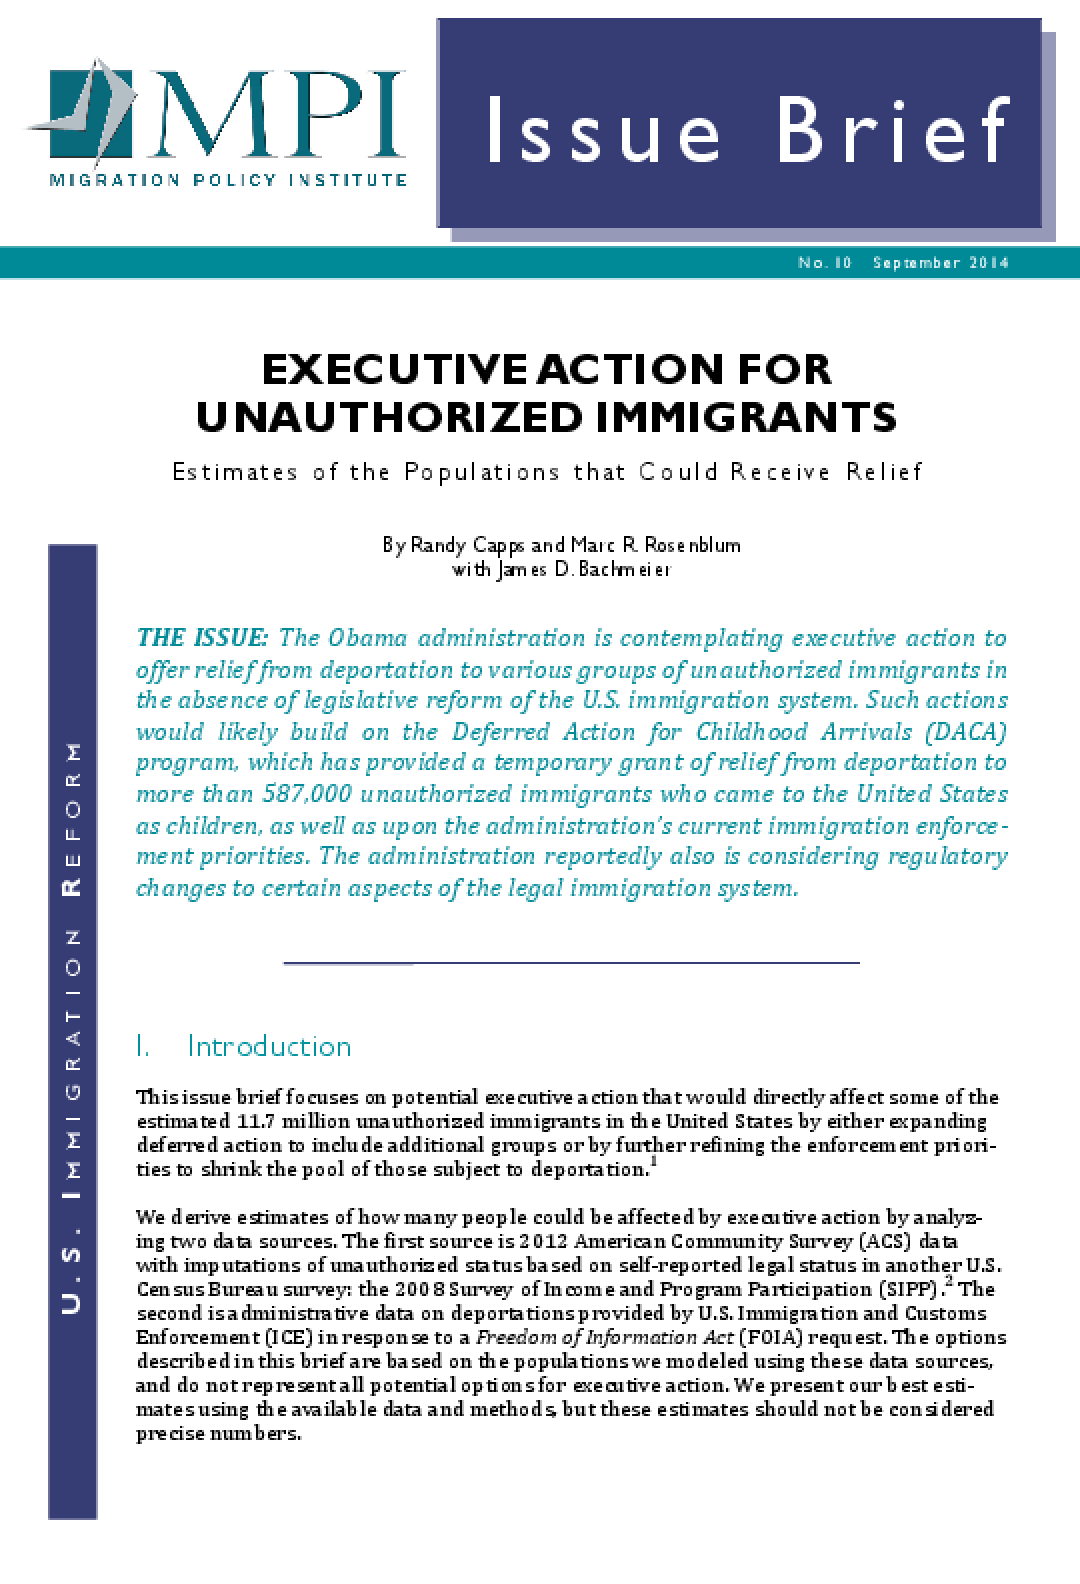 Executive Action for Unauthorized Immigrants: Estimates of the Populations that Could Receive Relief